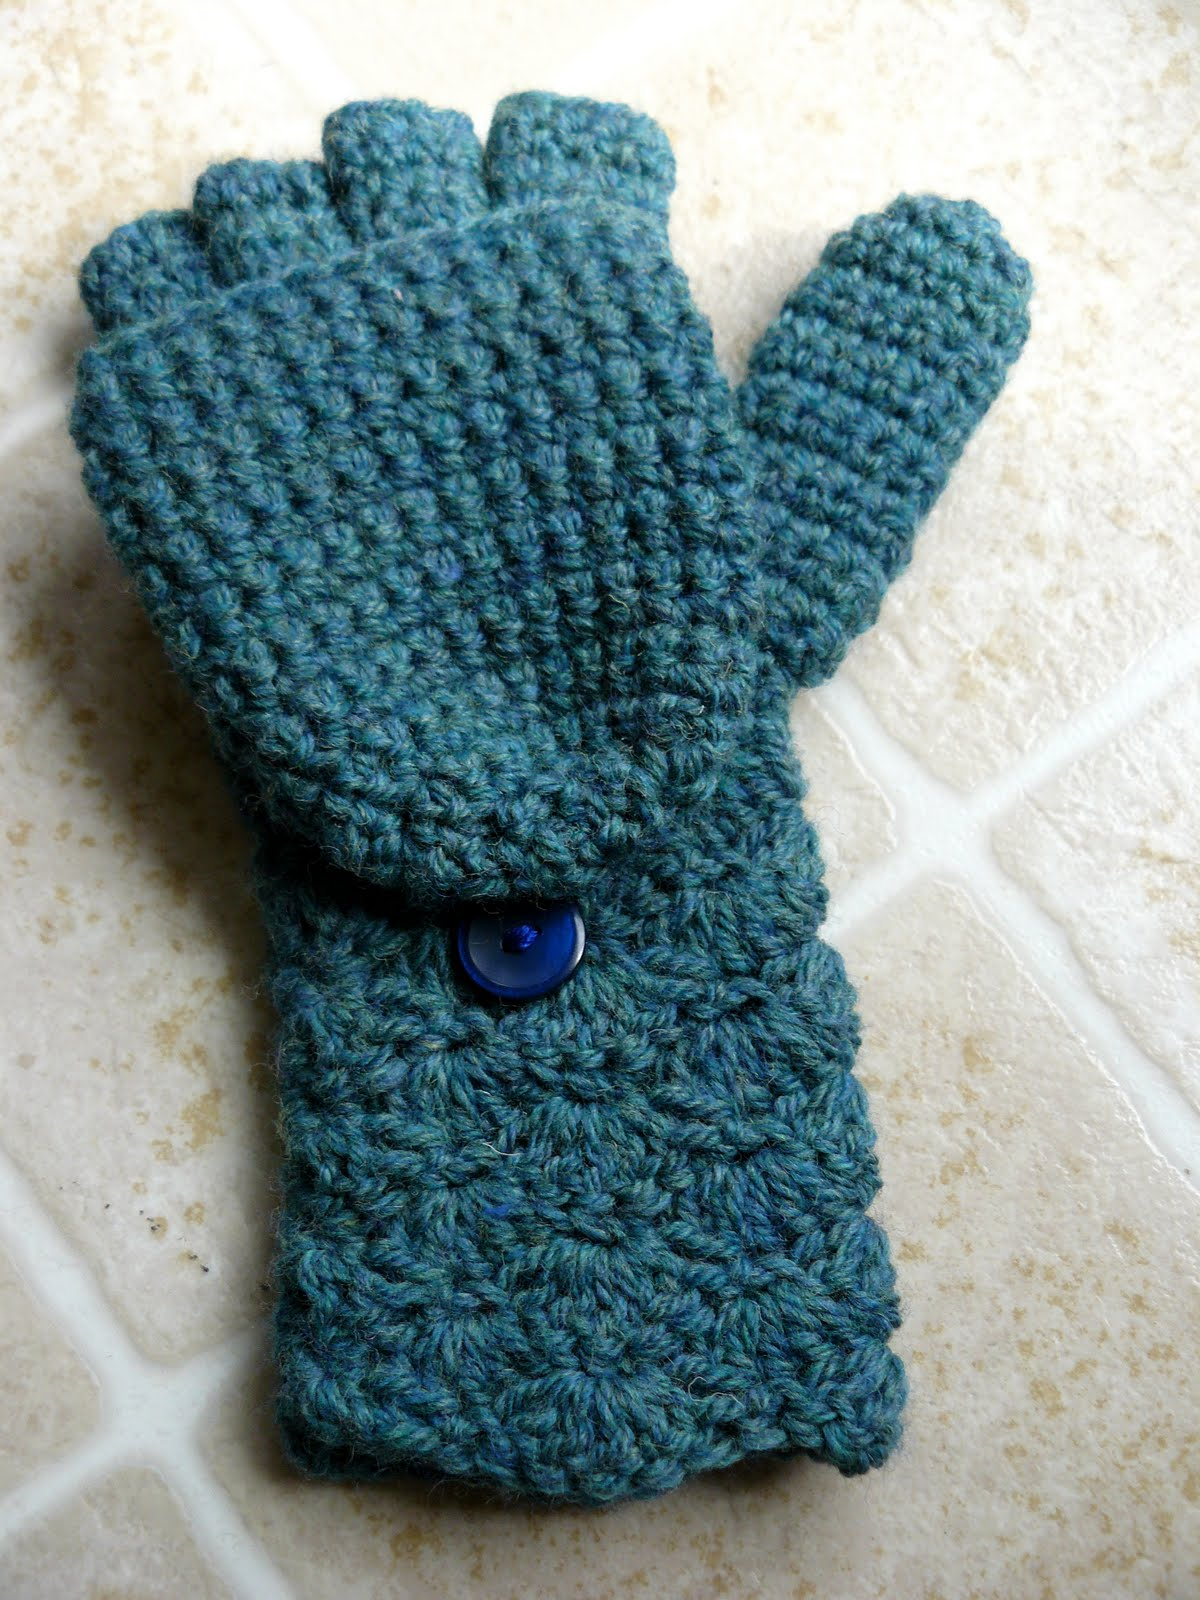 The Woven Home: Crochet Projects: Glittens